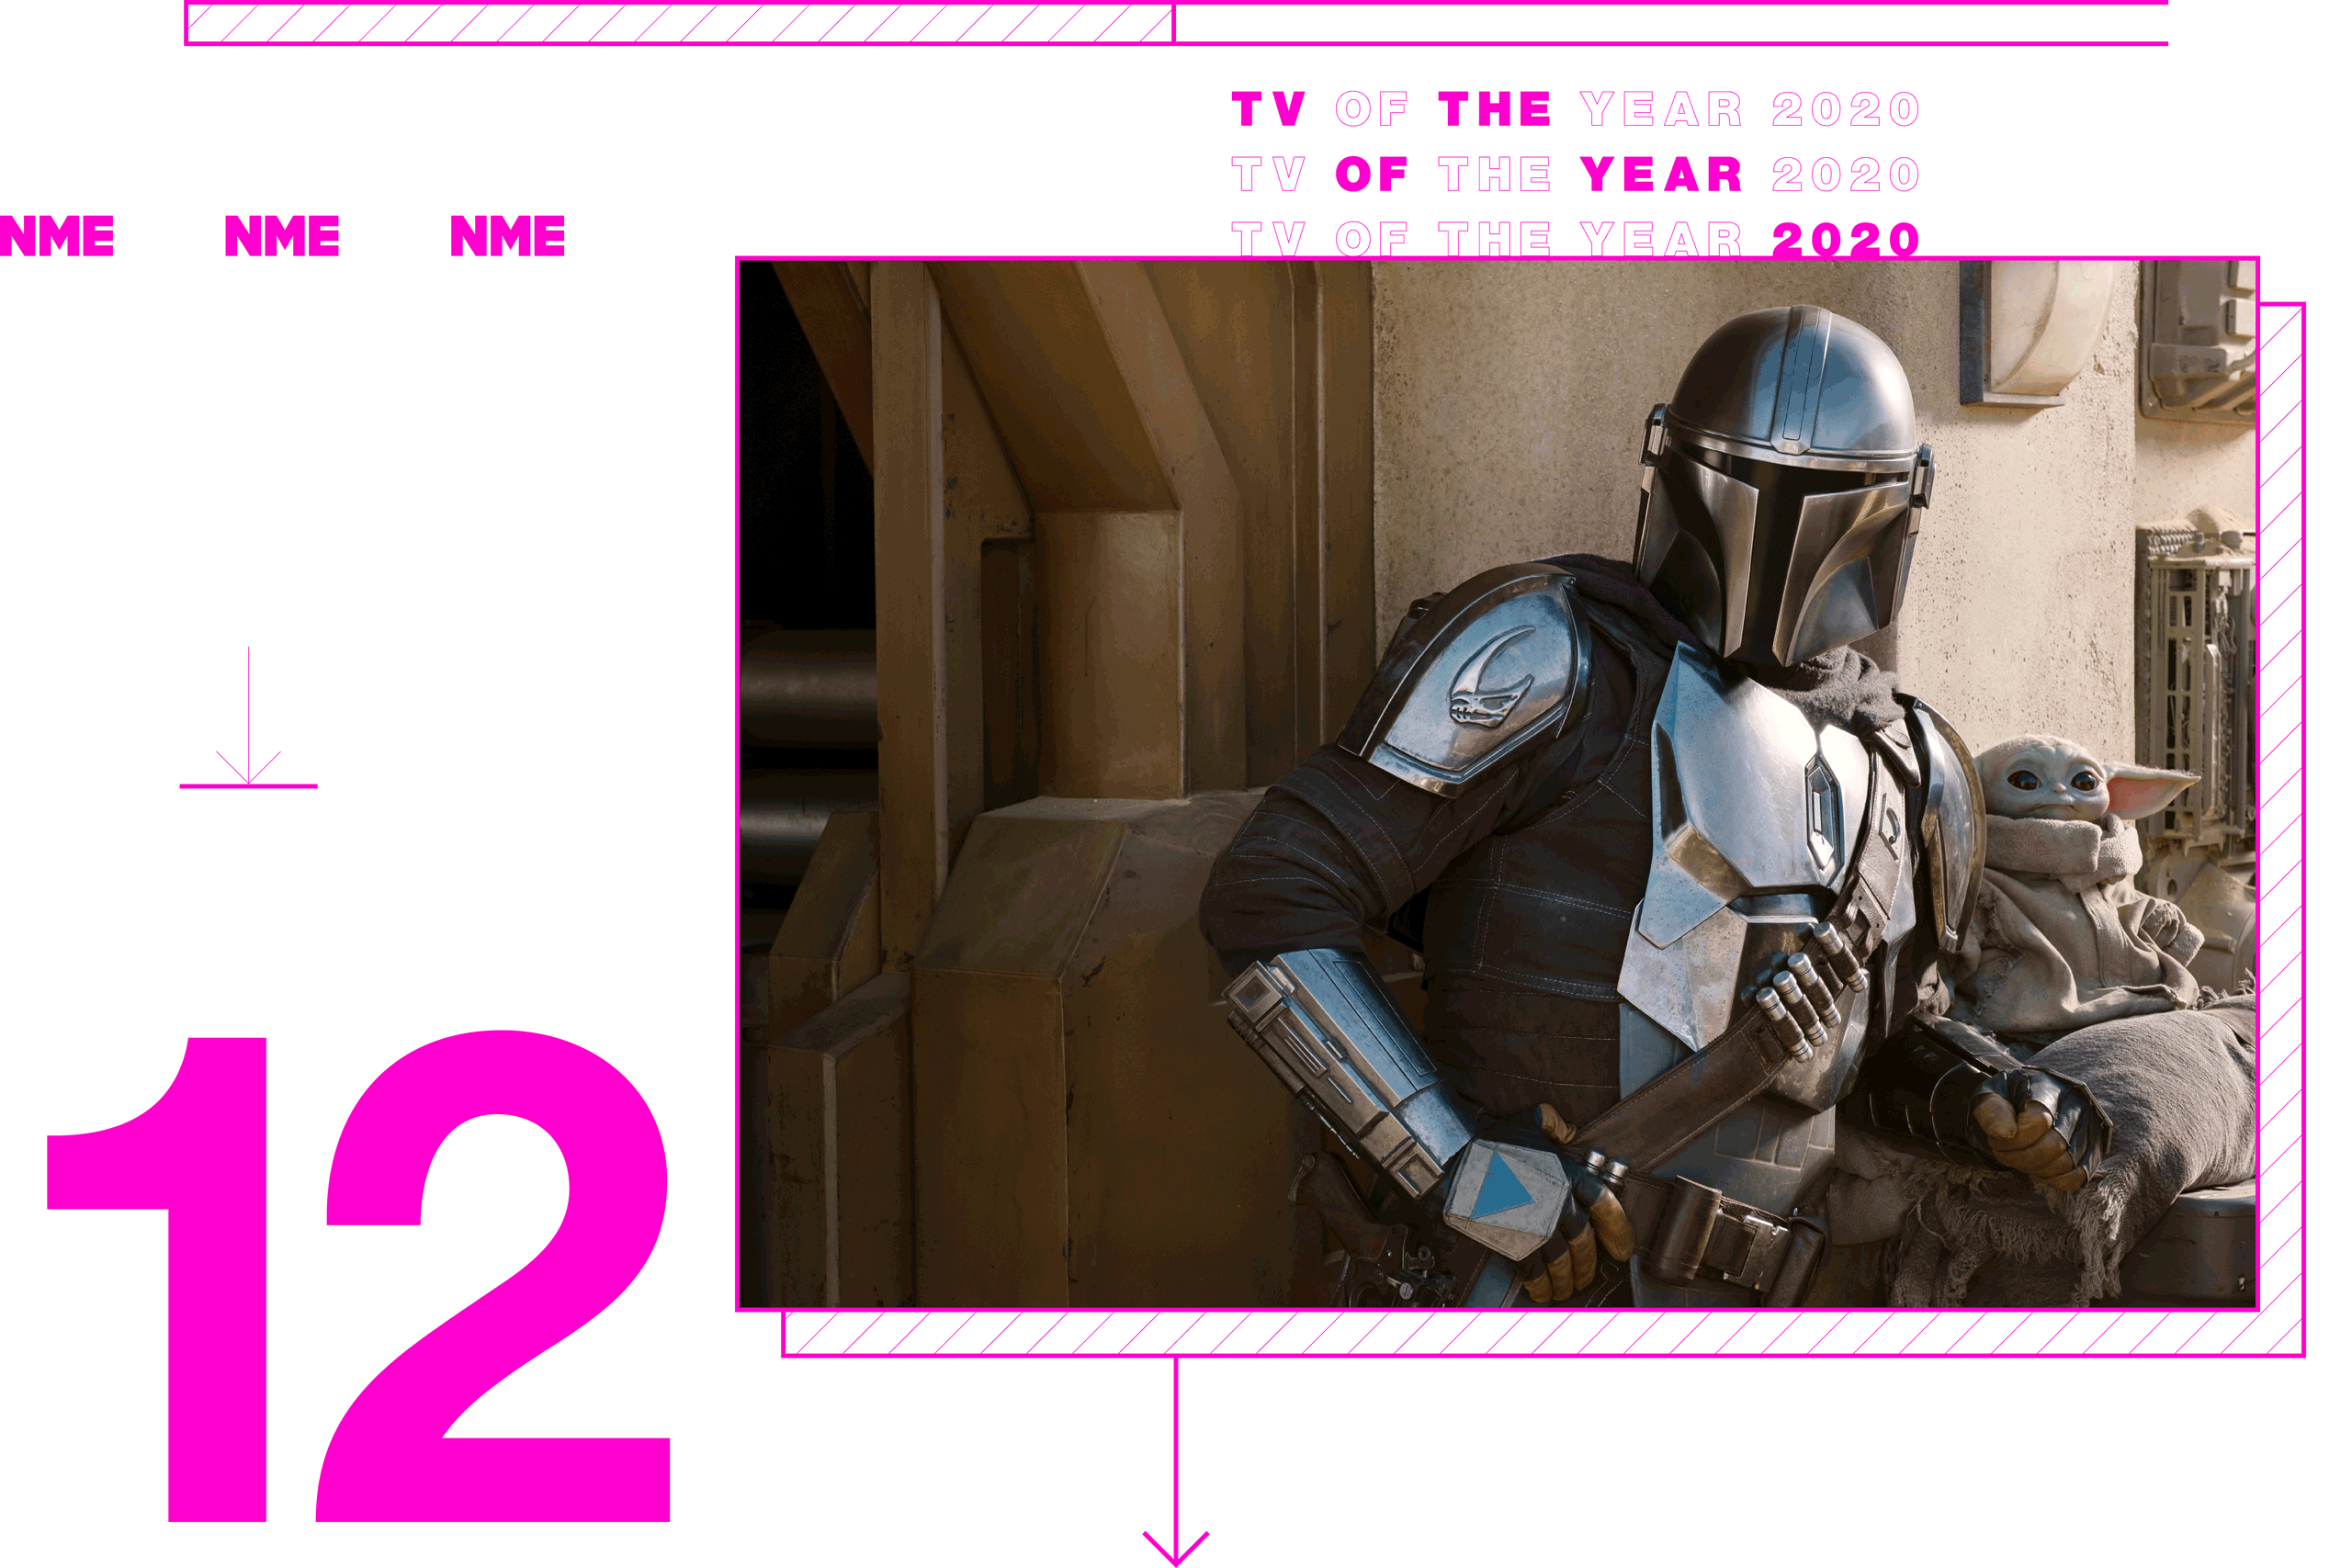 Tv Show of the year The Mandalorian